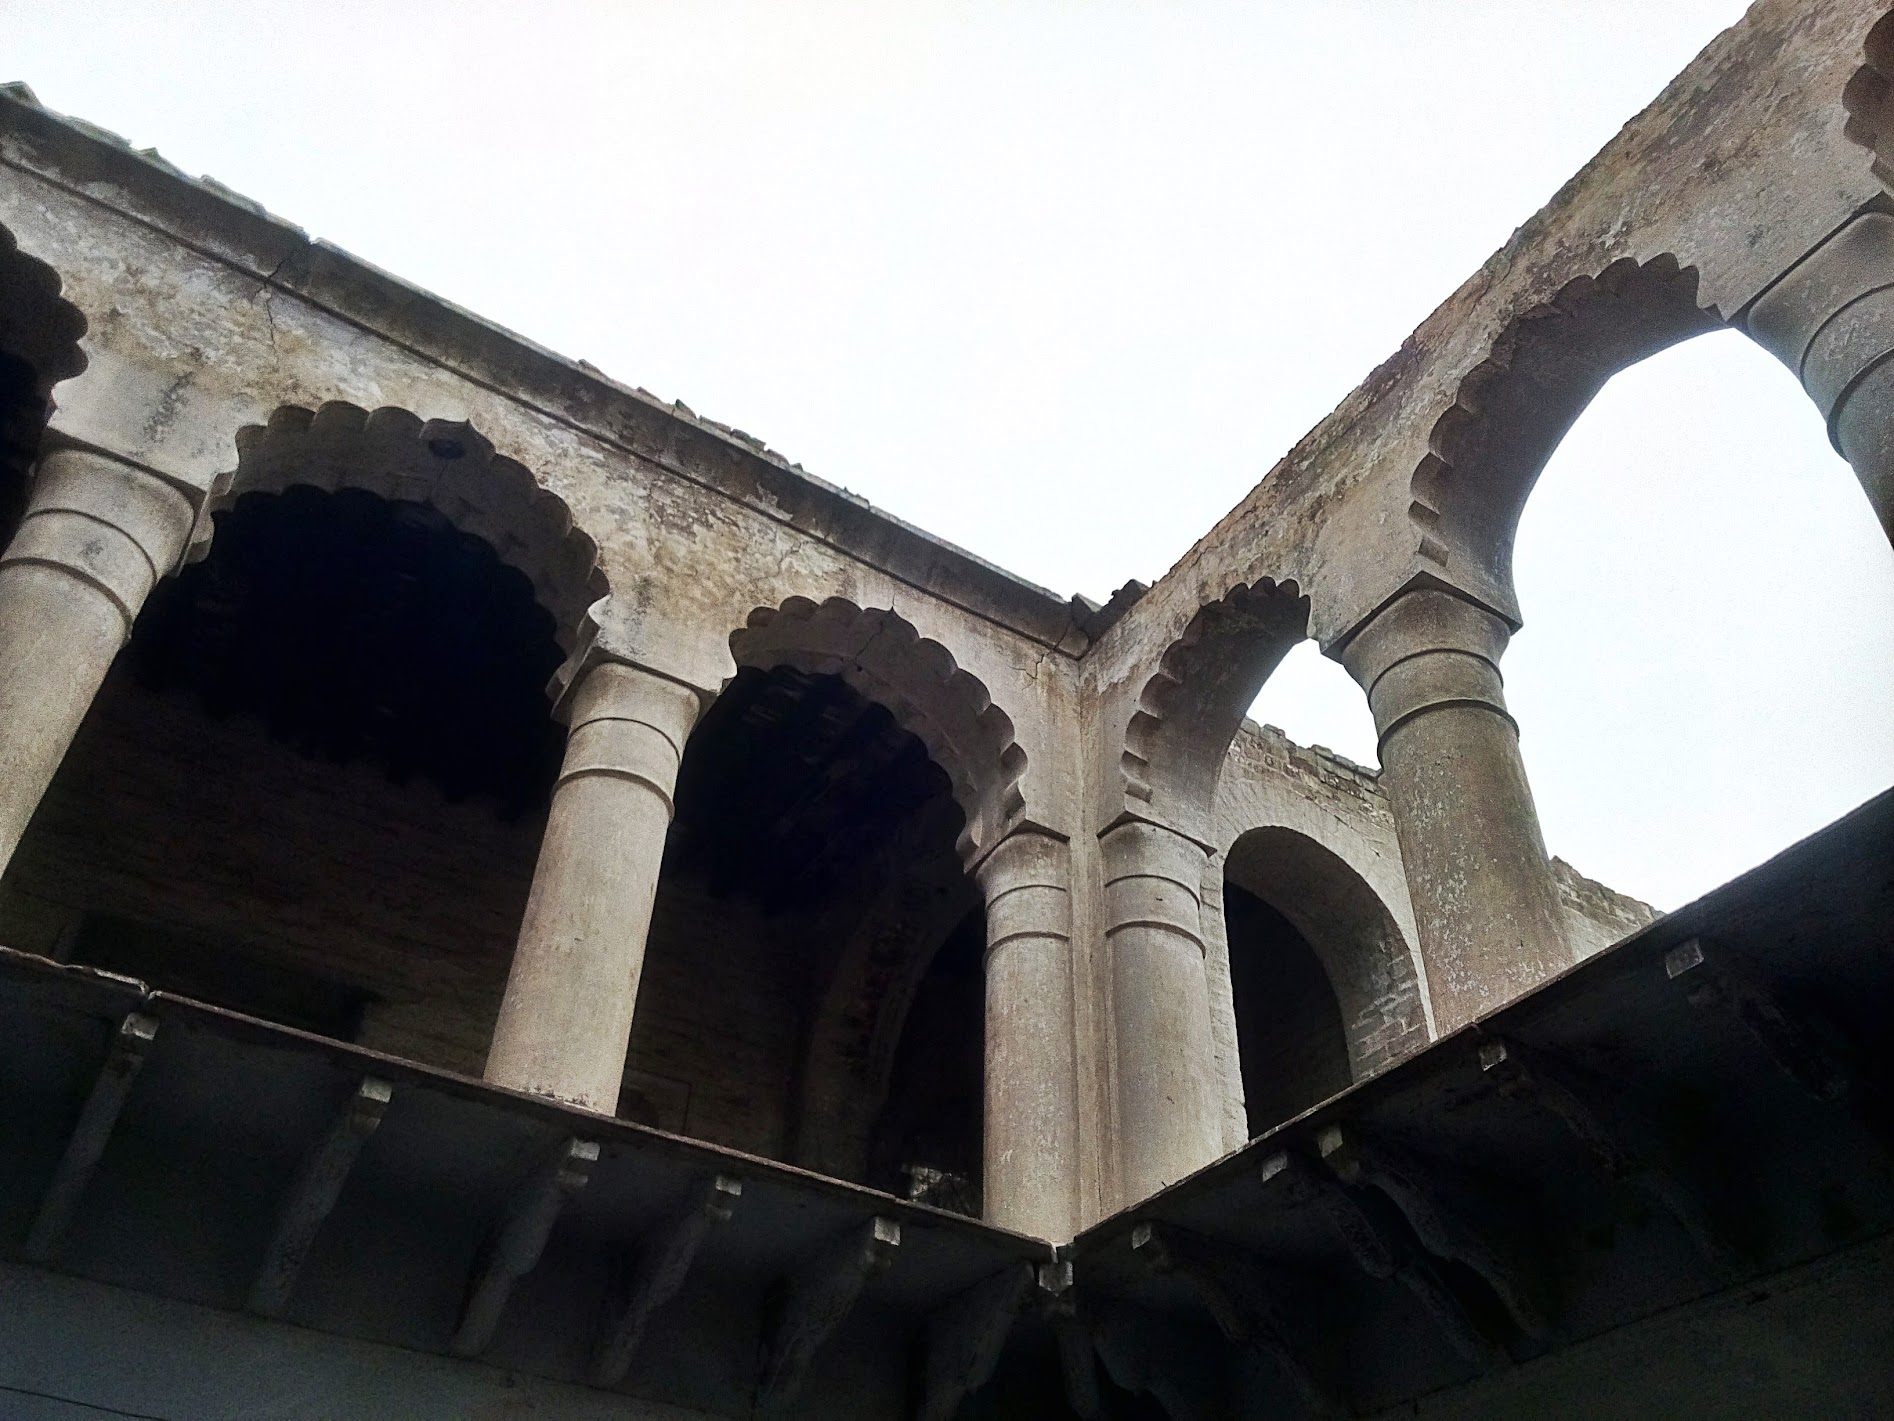 Arches of the temple